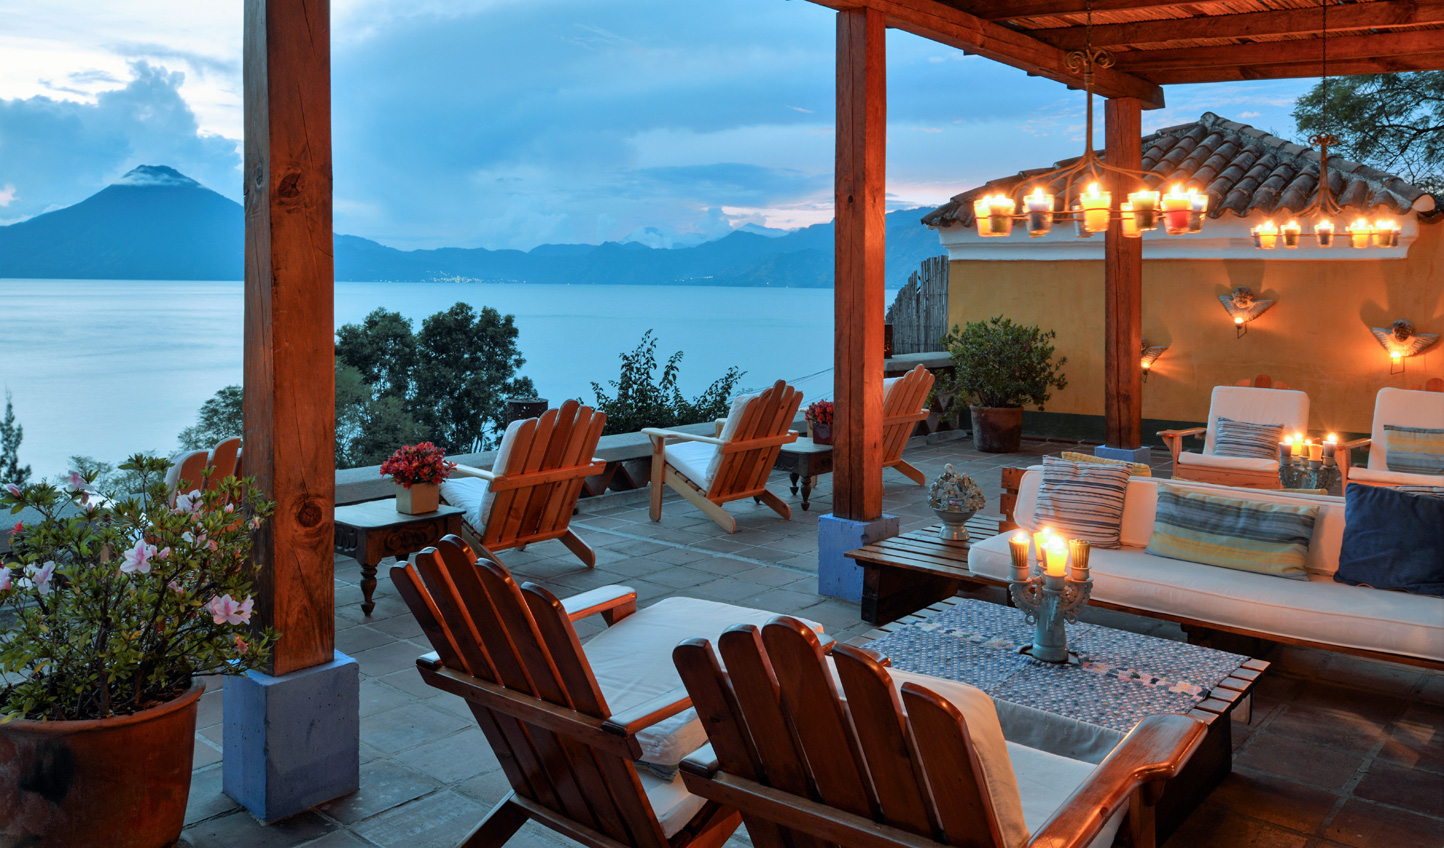 Savour a sundowner over gorgeous lakeviews